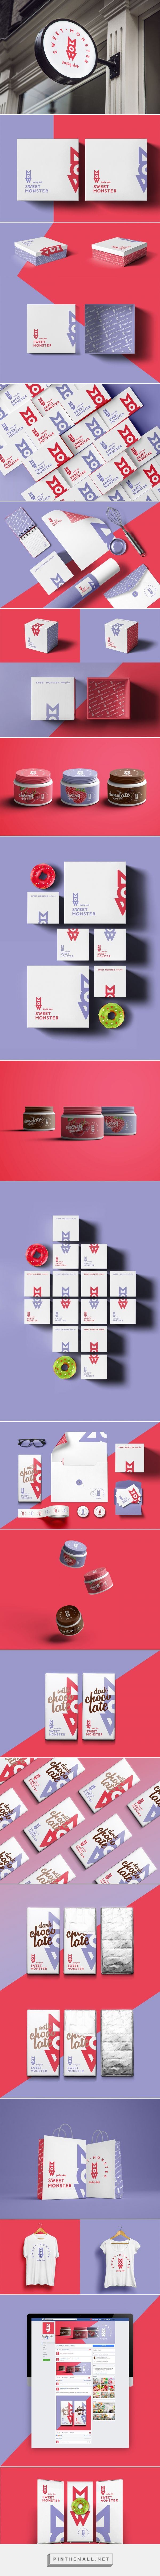 Sweet Monster | Pastry Shop (Concept) - Packaging of the World - Creative Package Design Gallery - http://www.packagingoftheworld.com/2016/12/sweet-monster-pastry-shop.html